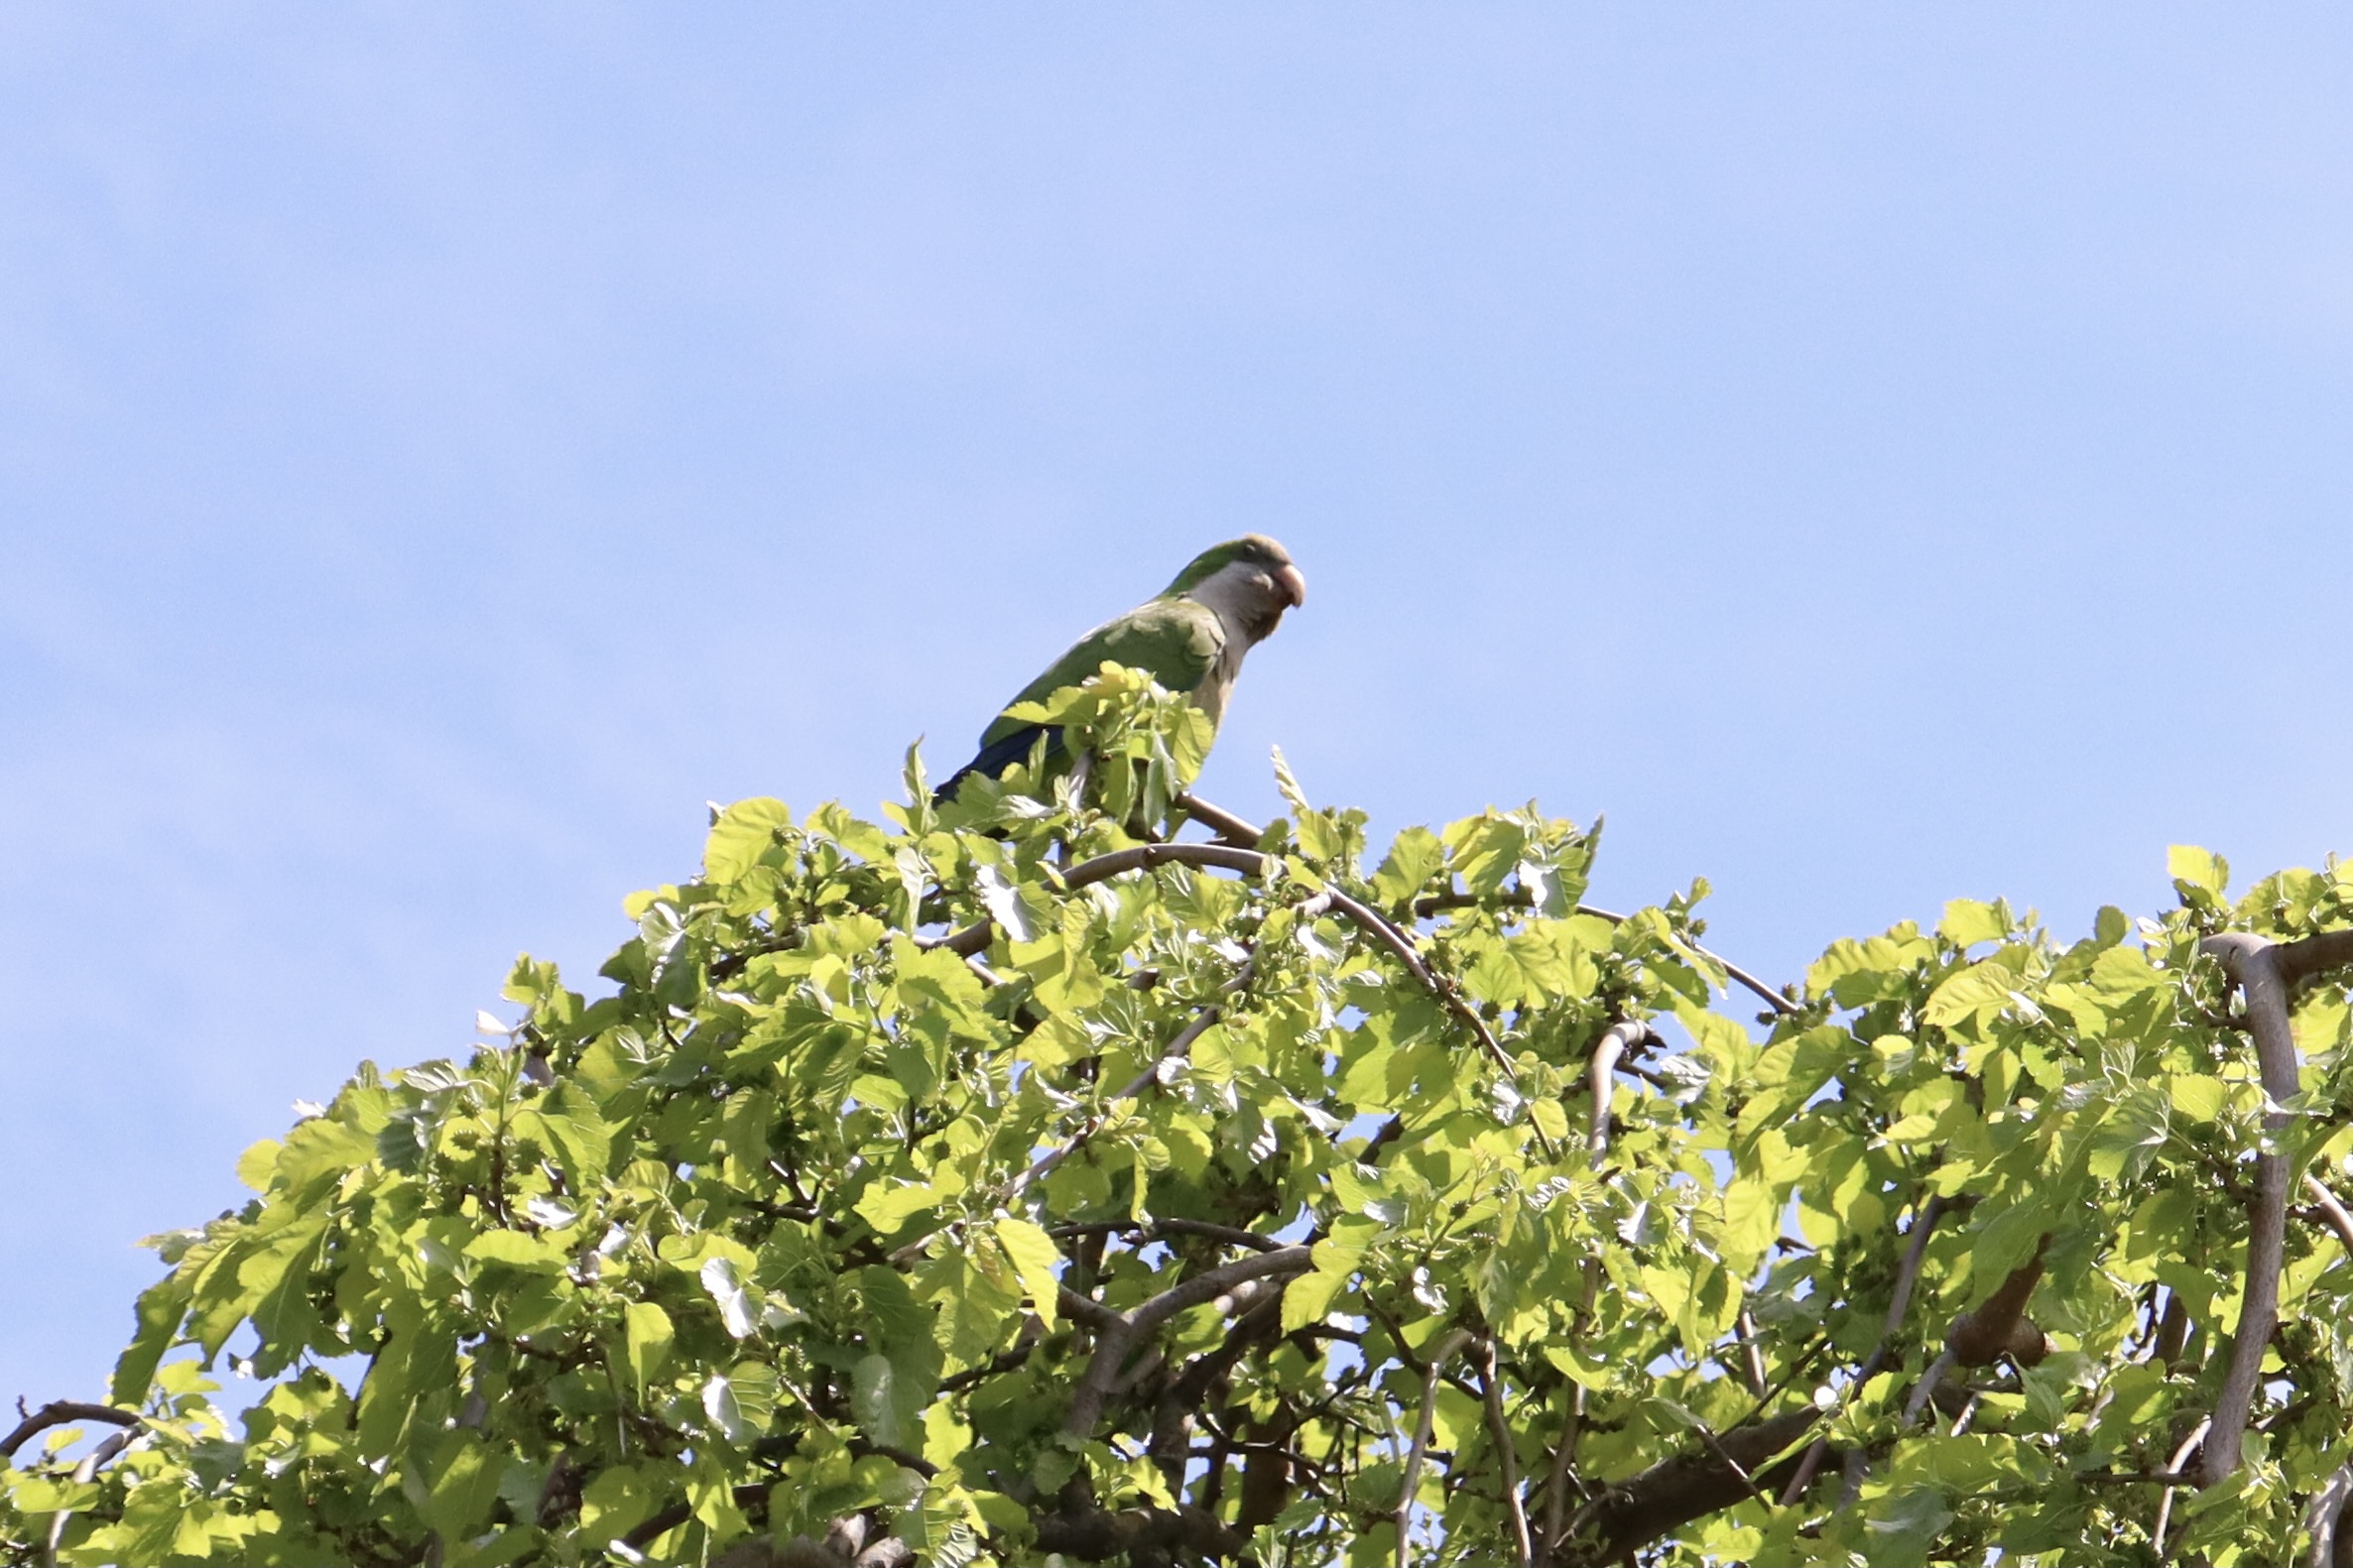 Robin at Green-Wood Cemetery - The American Robin made way for this Monk Parakeet atop the same tree.